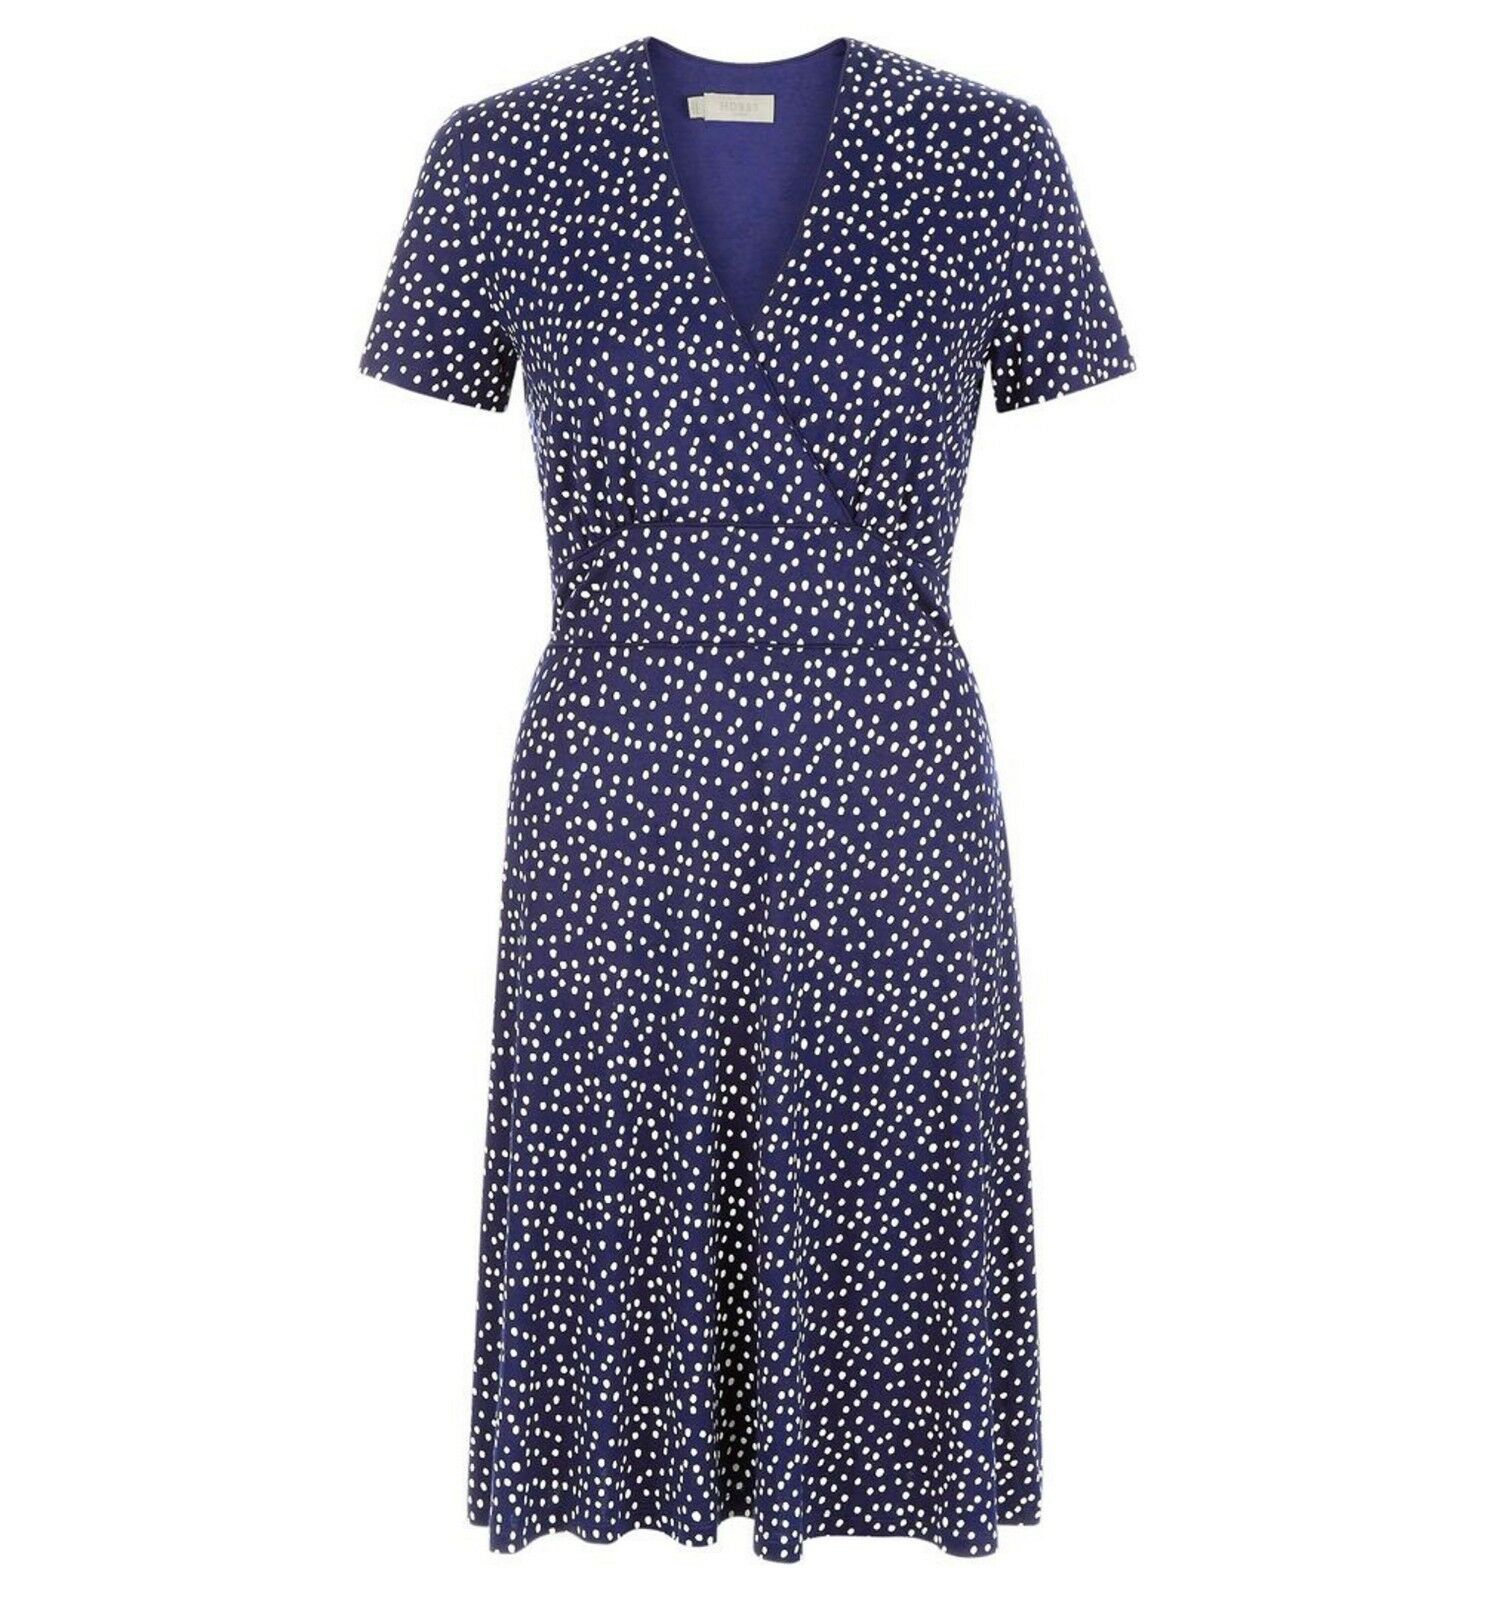 HOBBS - Darcie Dress - French Navy White - U.K. 14 - Brand New With Tags